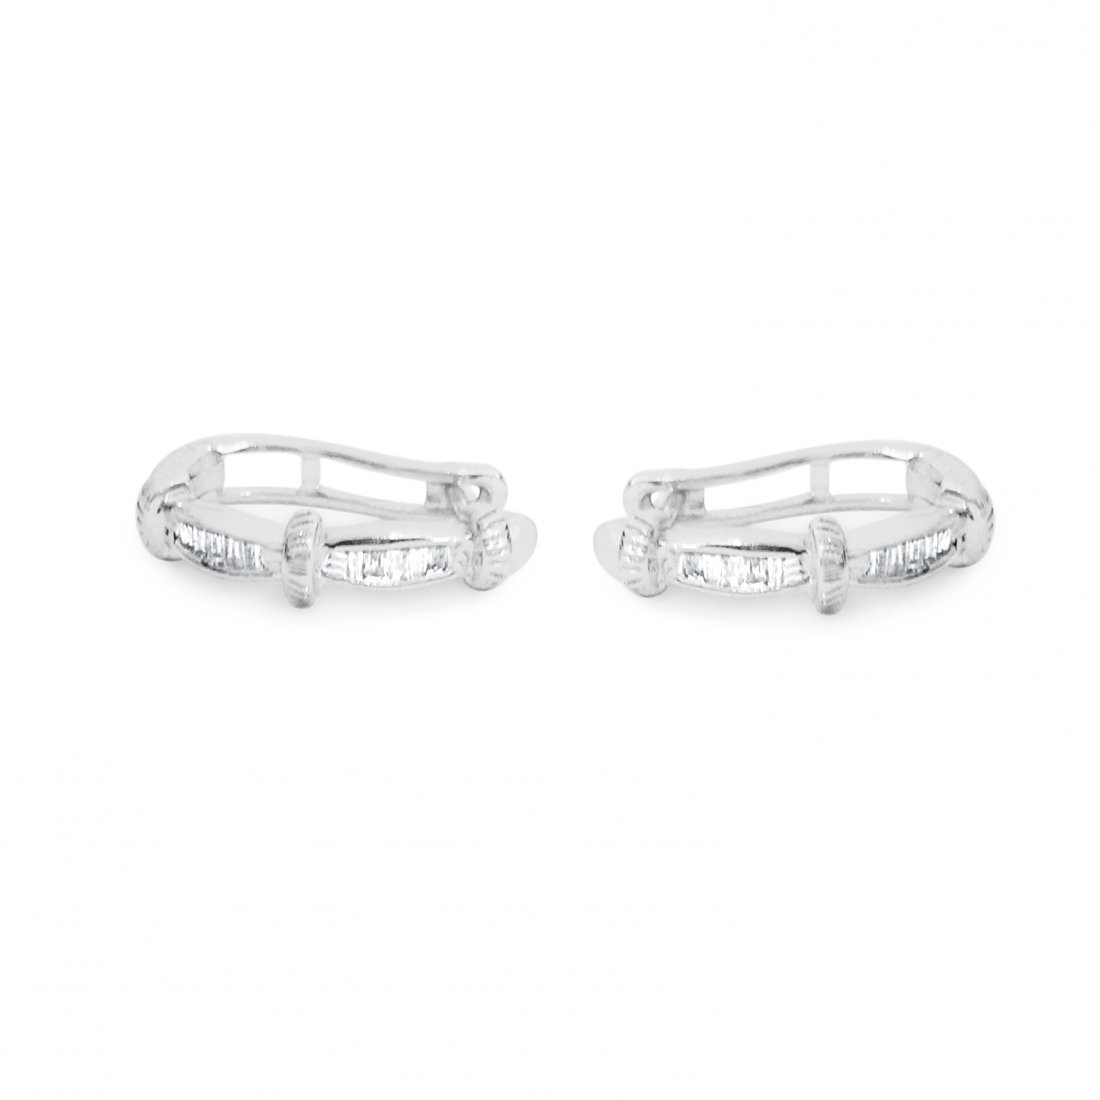 14K white gold. G color and SI clarity Diamond Earrings